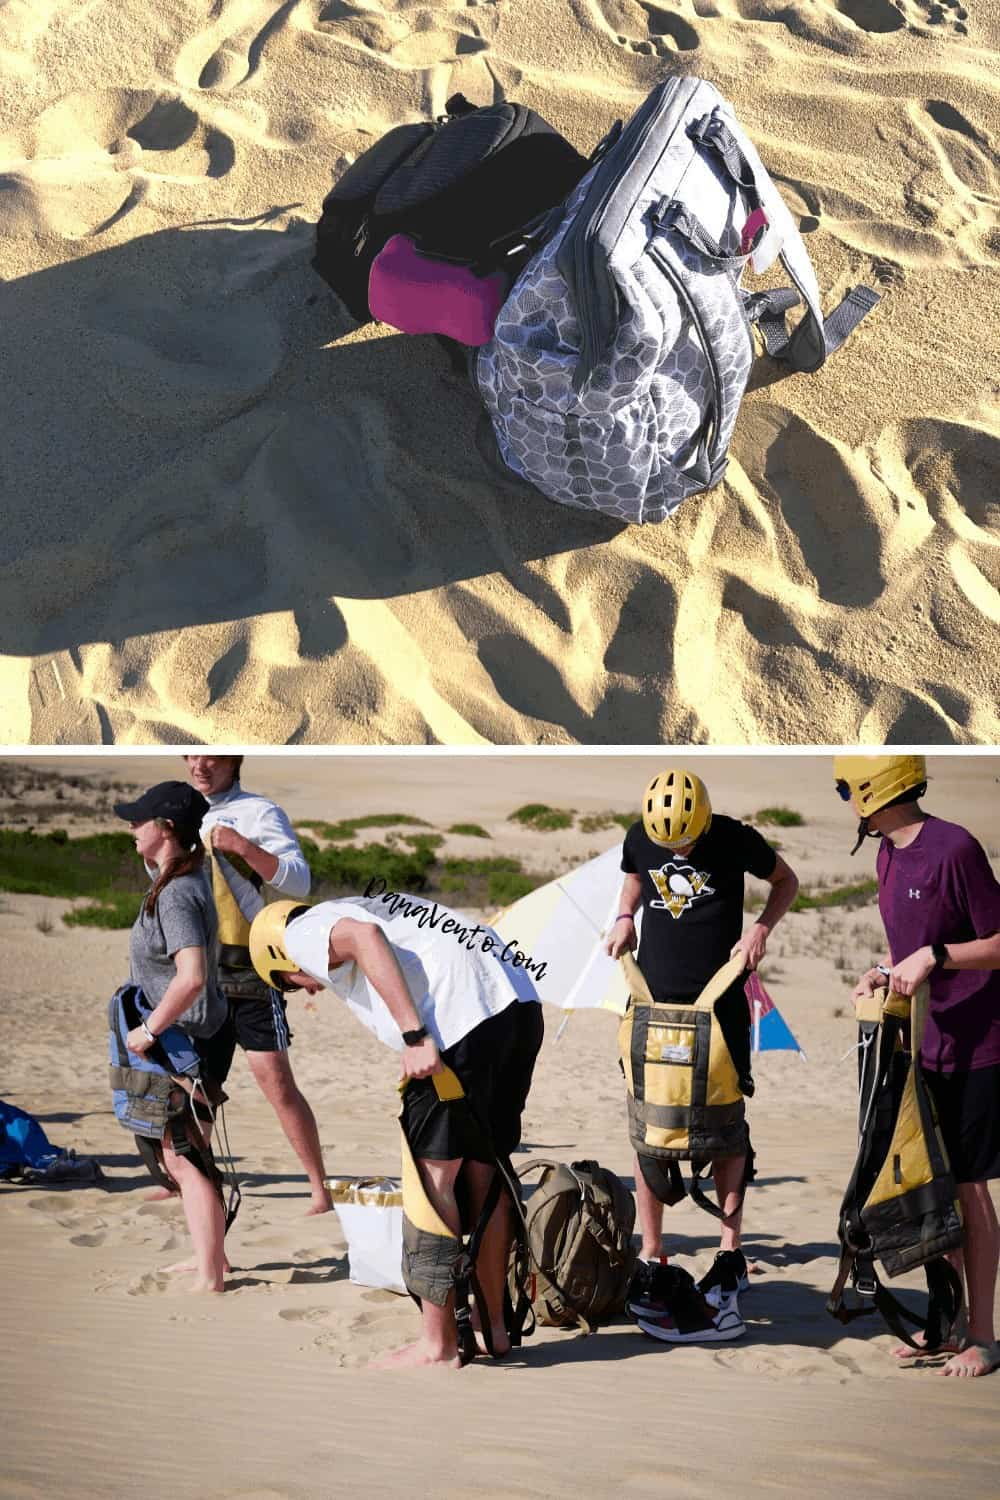 Backpacks on sand at Outer Banks hang gliding experience